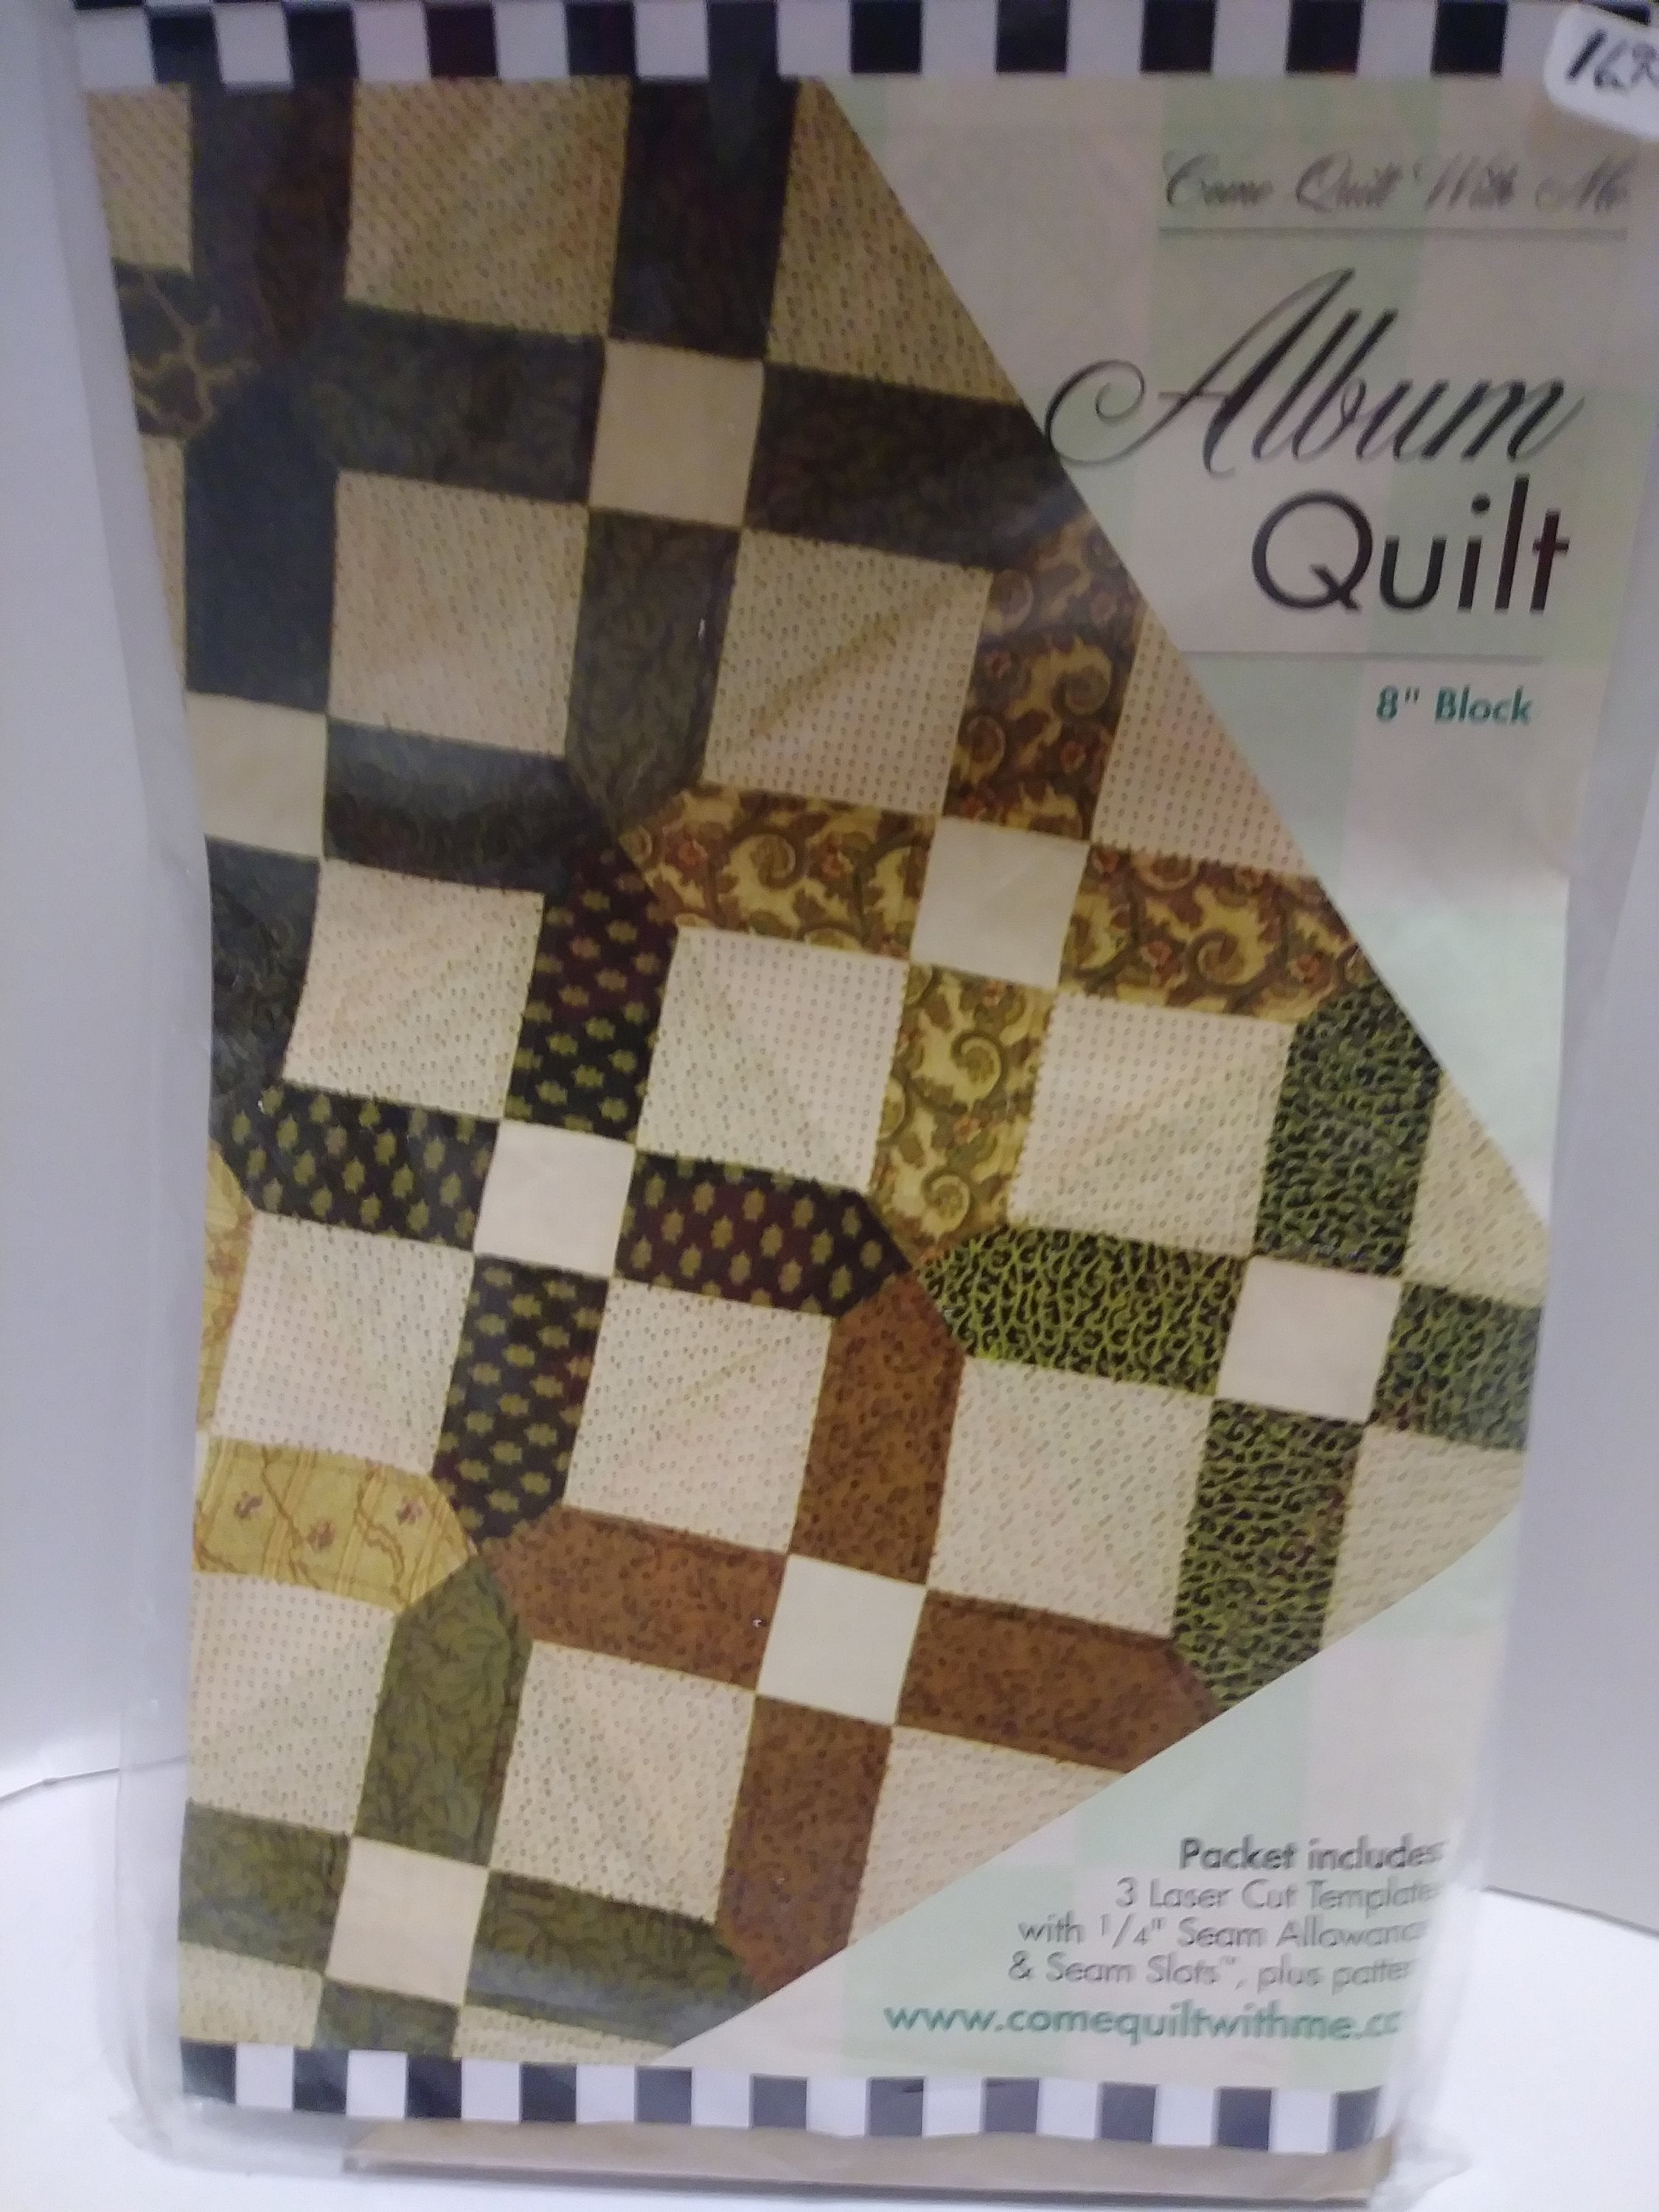 Come Quilt With Me Company- Album Quilt 8 inch blocks  Laser Cut Templates  and Pattern  DIY Album quilt  Goof proof templates